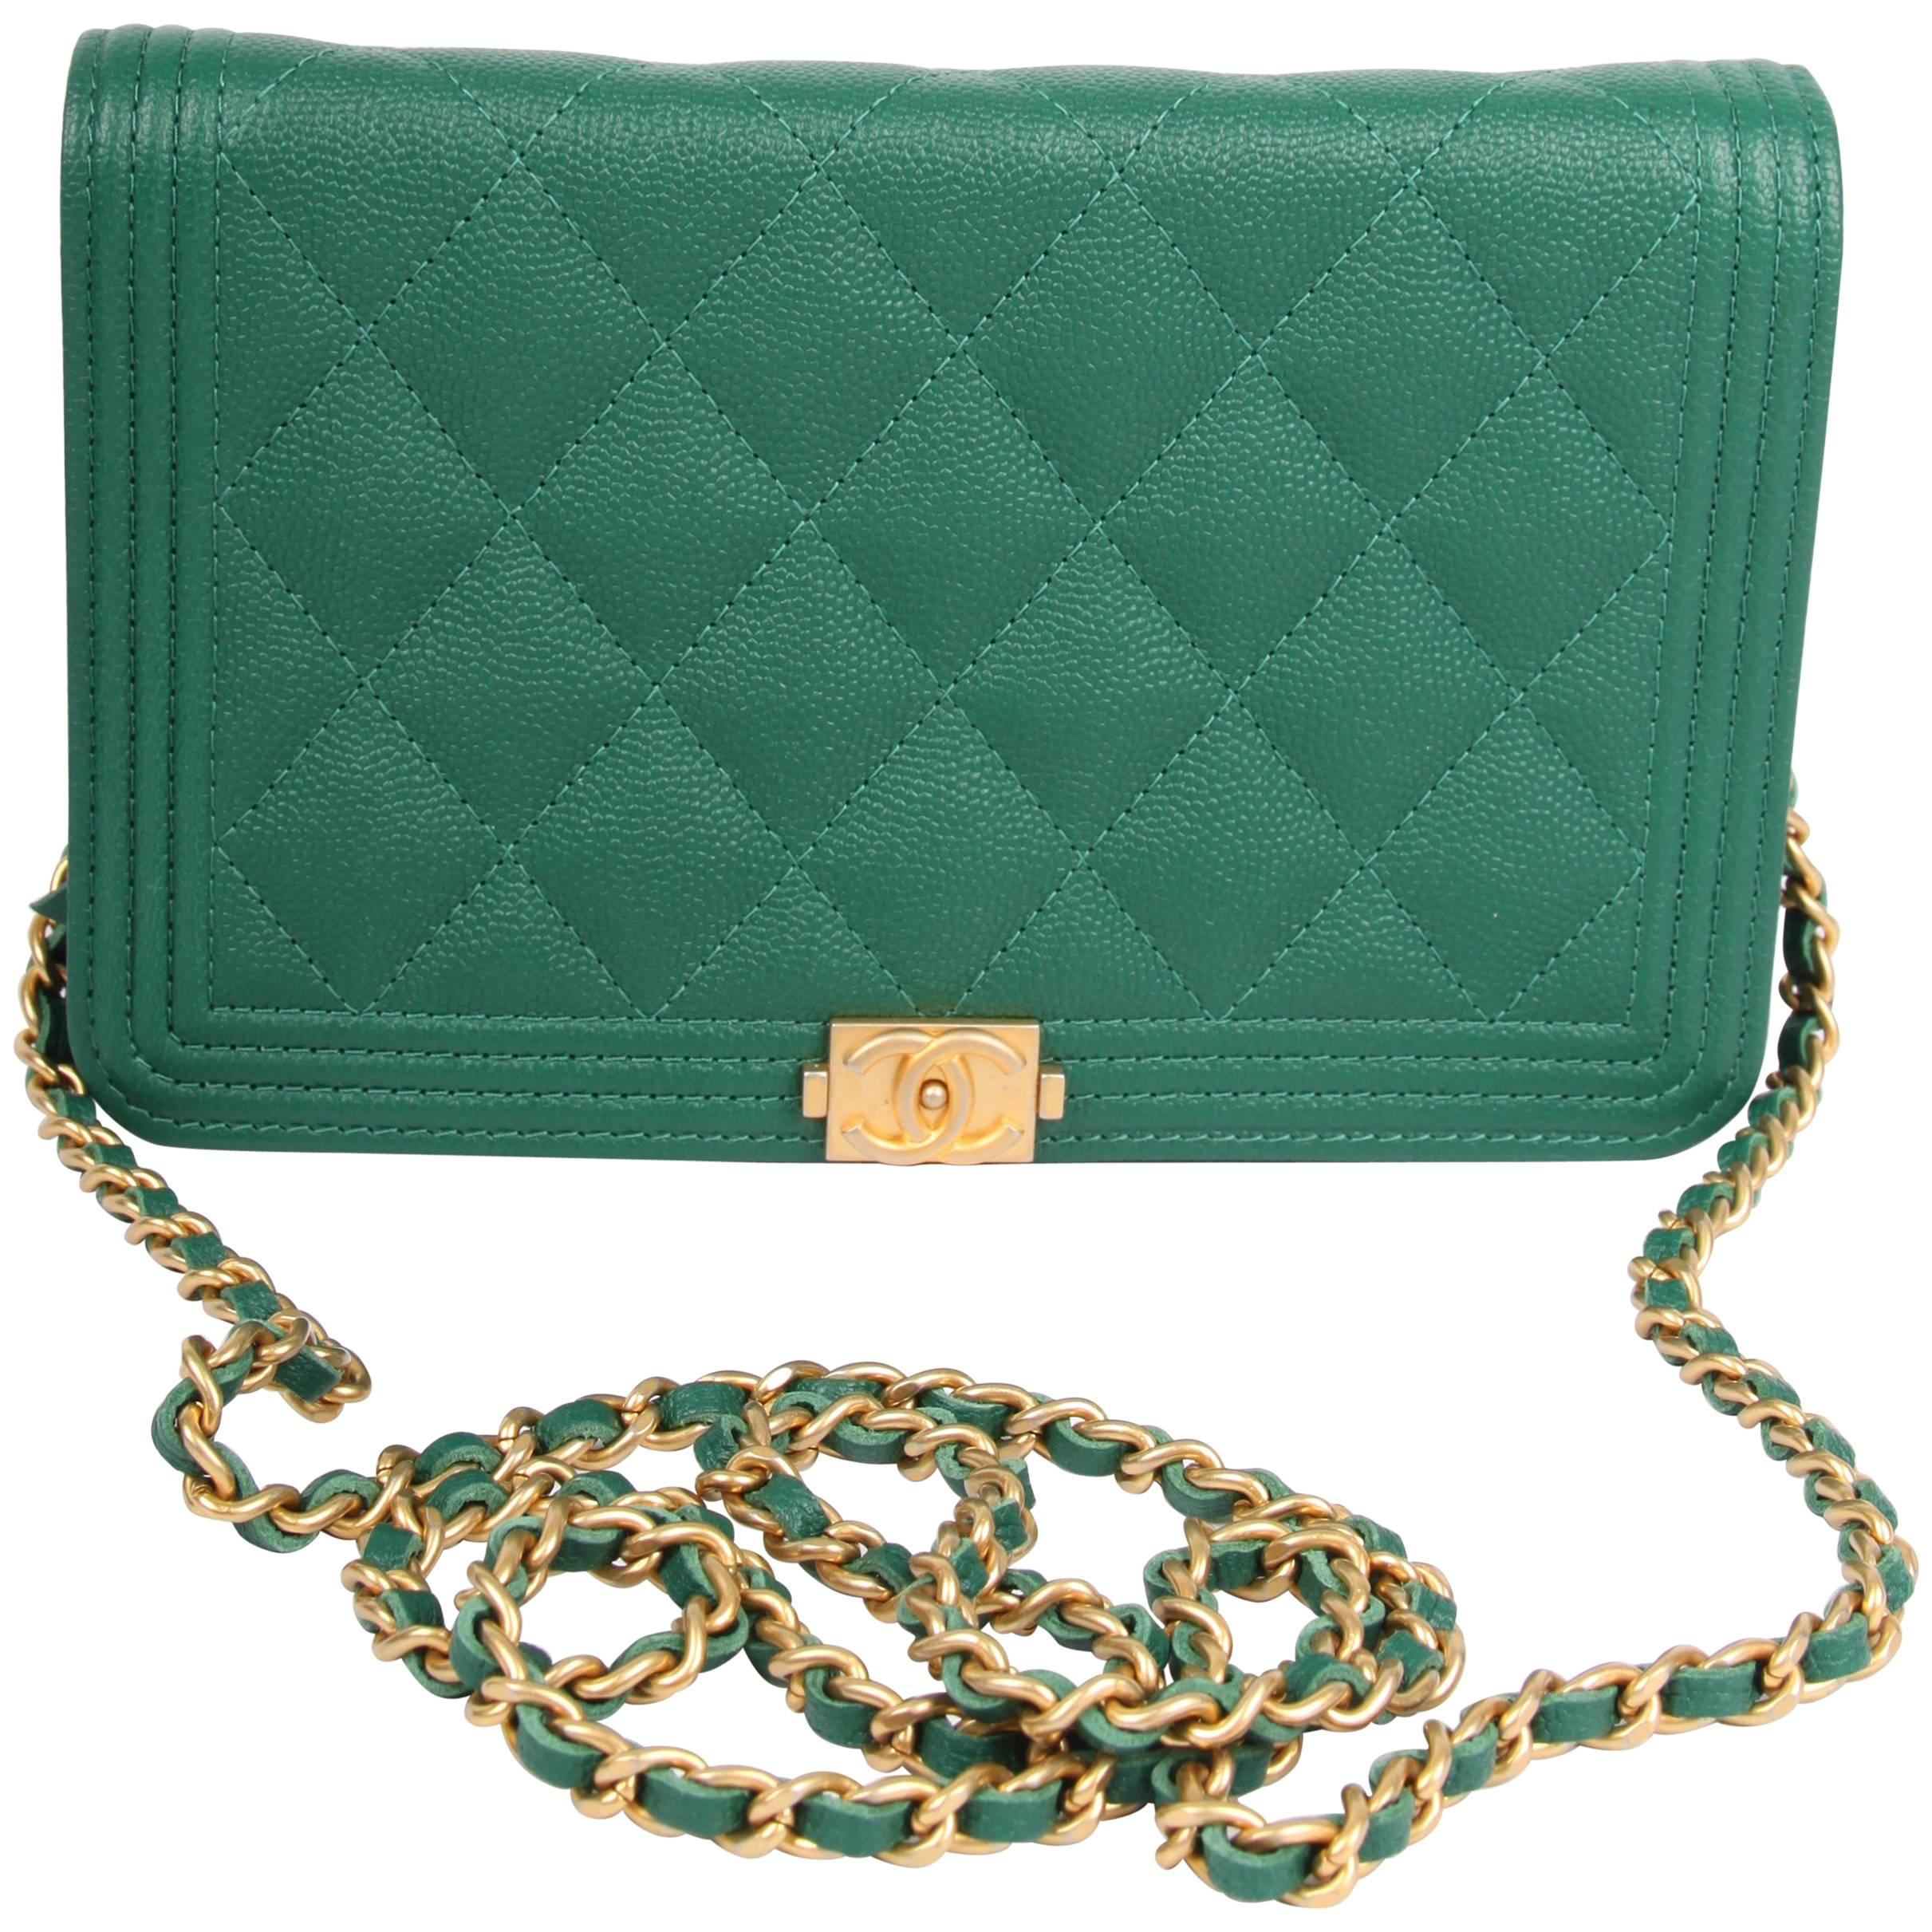 ea0deacb853f Chanel WOC Wallet on Chain Boy Bag - emerald green at 1stdibs